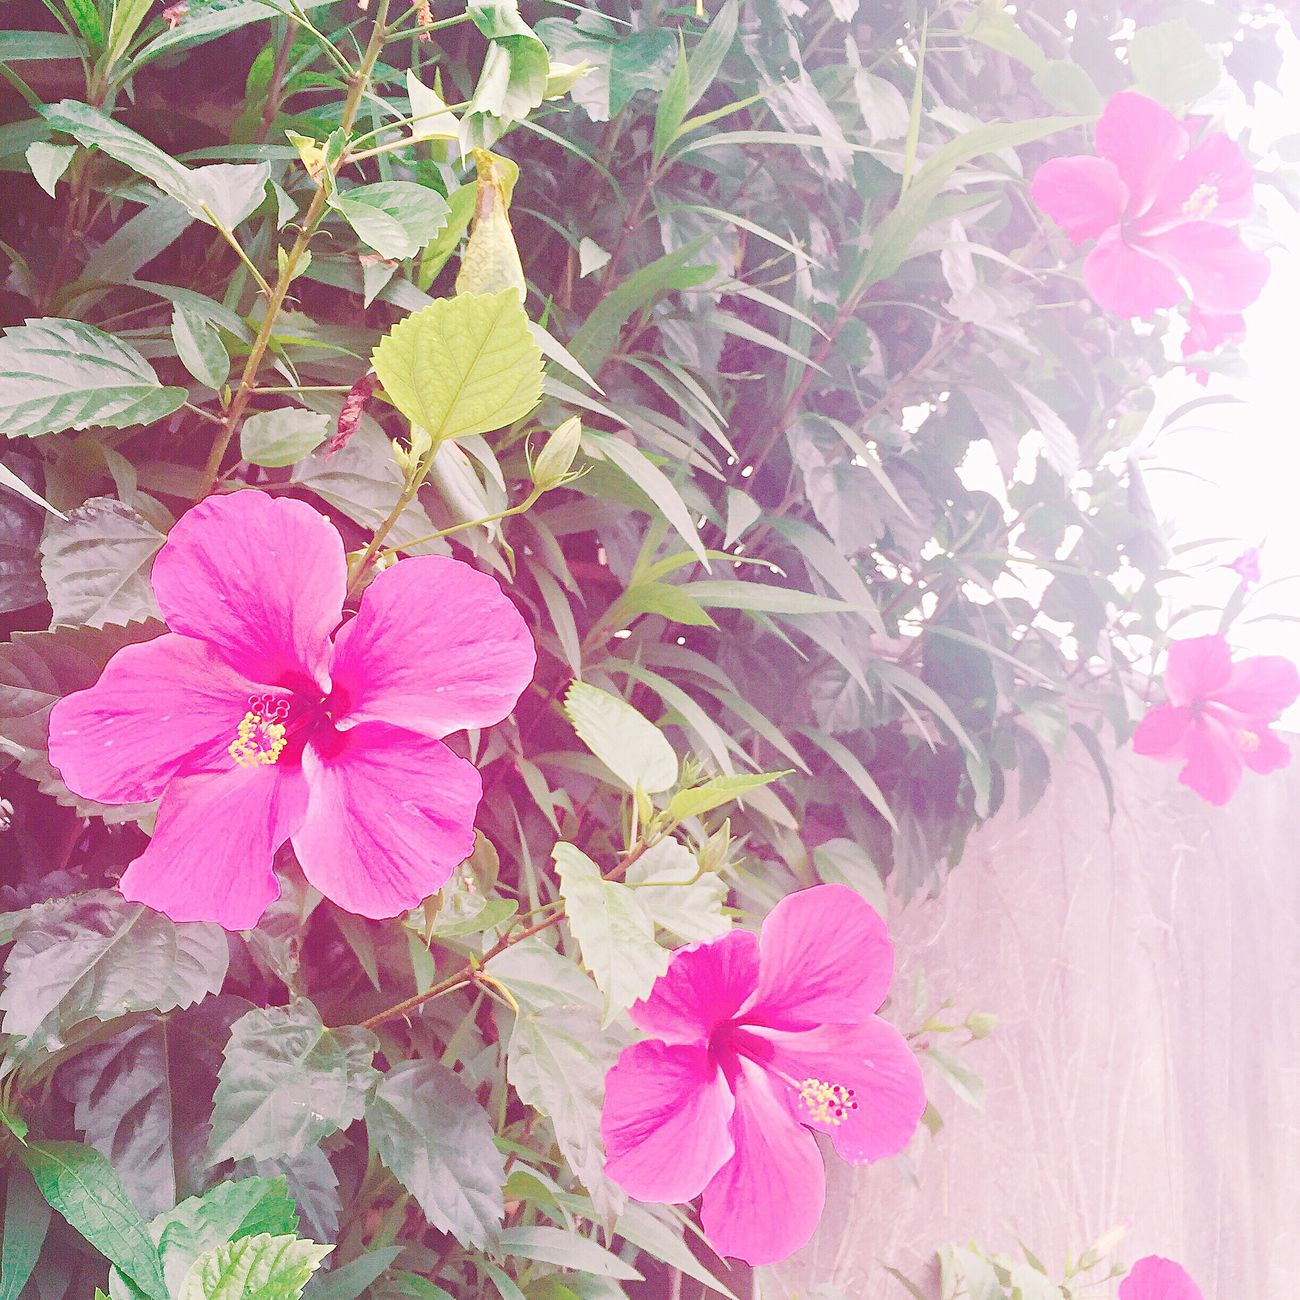 Taiwan Flower Flowers Hi! Relaxing Taking Photos Enjoying Life Hello World Beauitful Day First Eyeem Photo